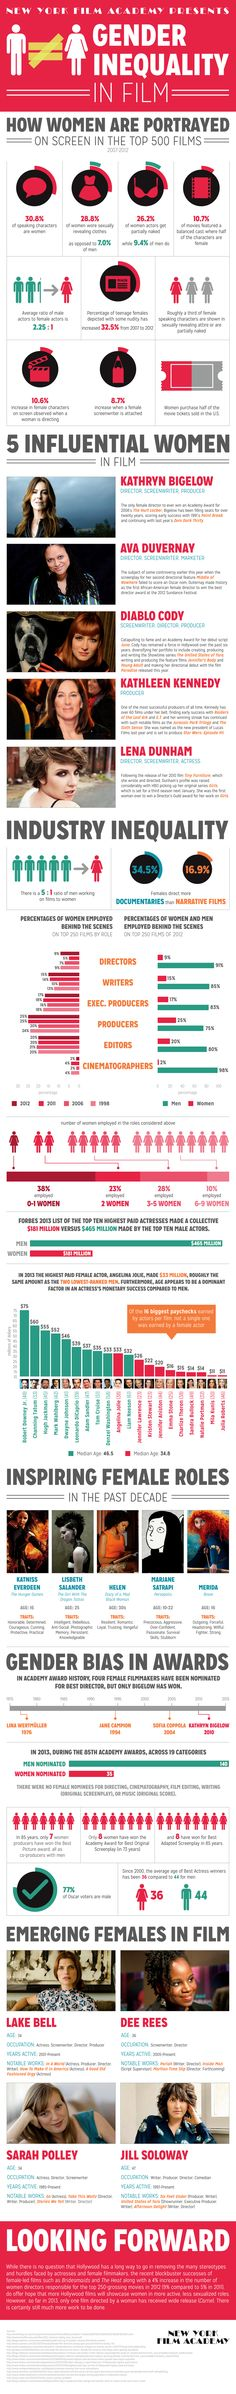 Gender Inequality in Film - An Infographic #women #film #equality